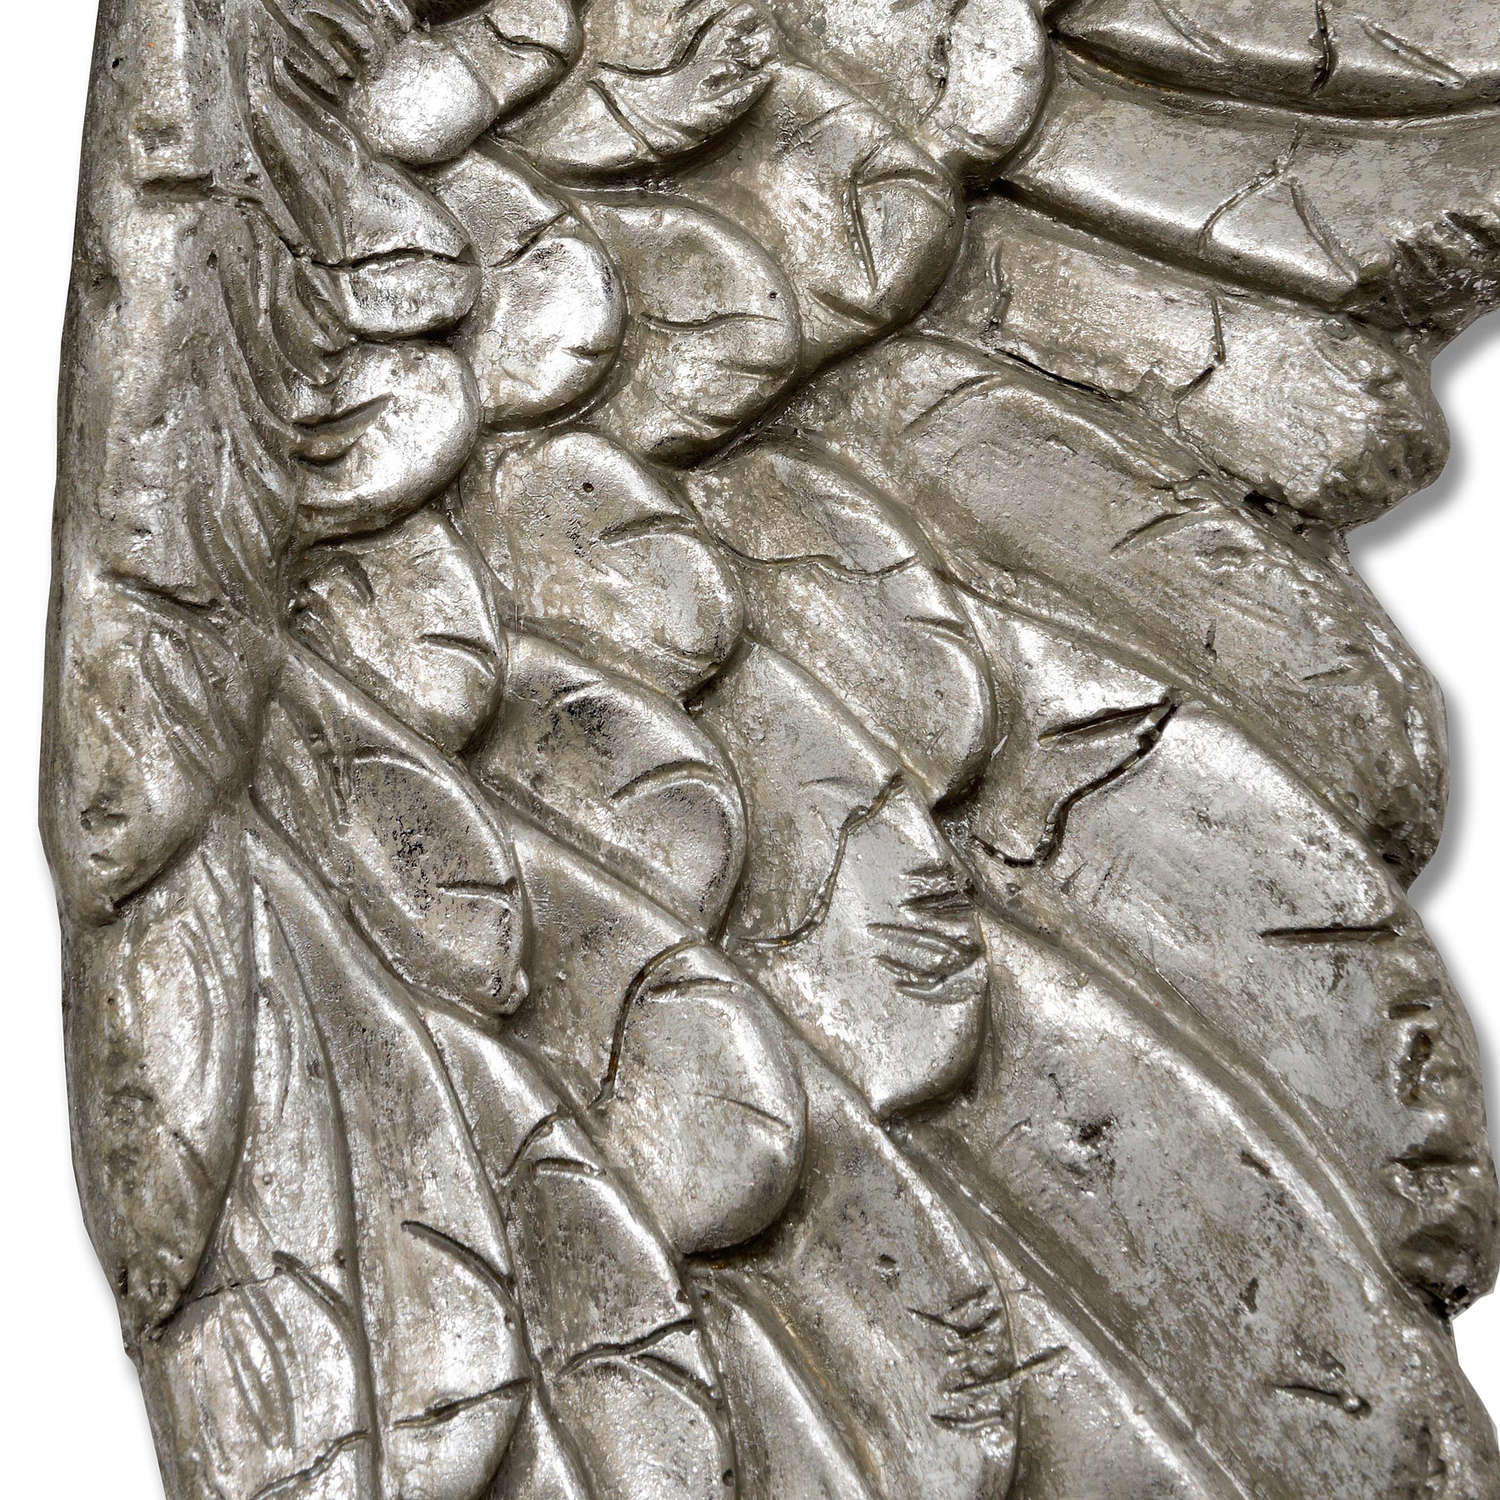 Antique Silver Angel Wings - Image 2